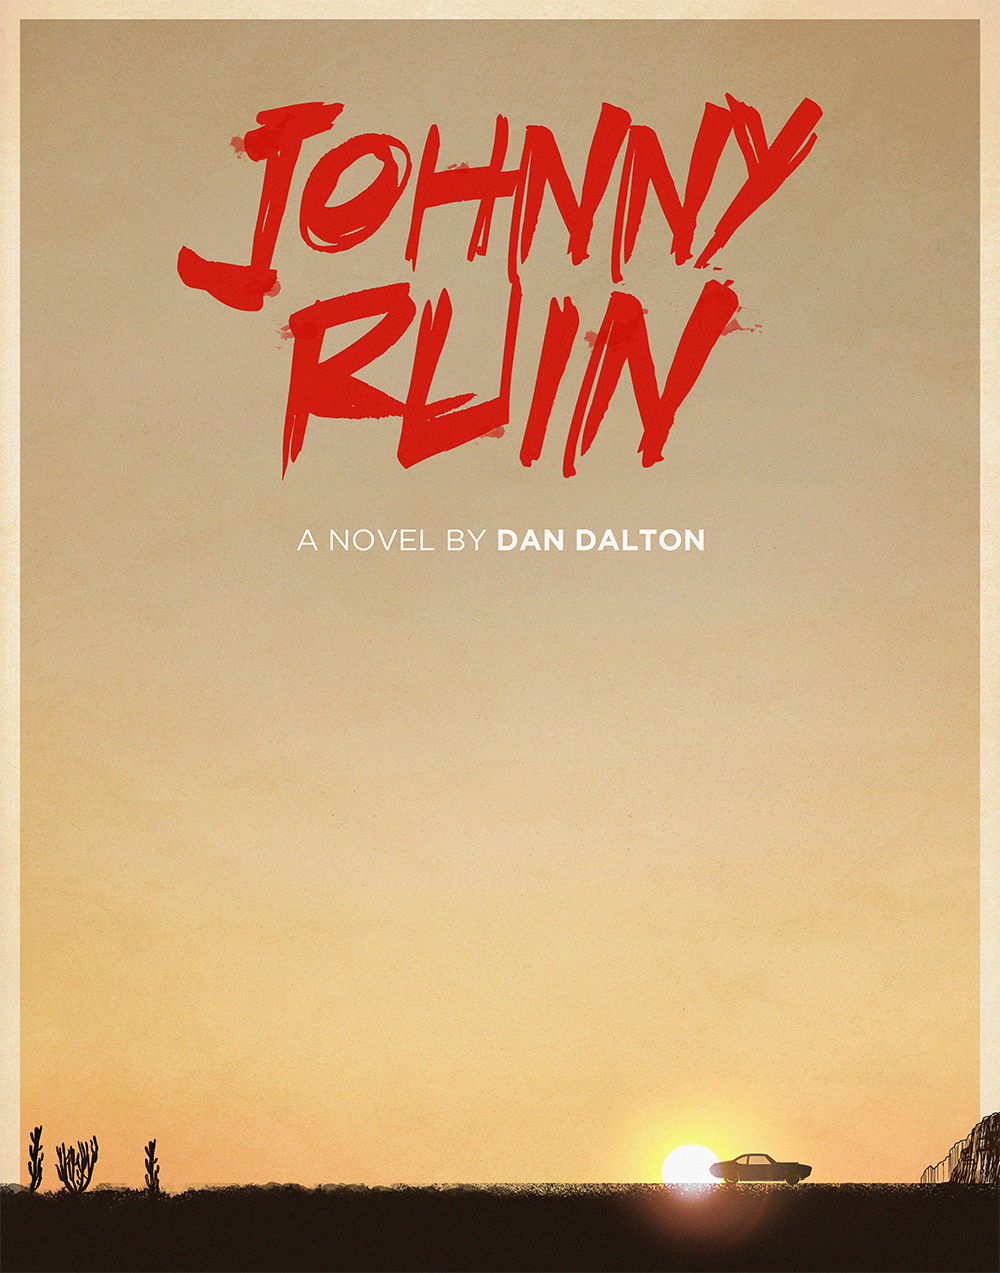 "johnny-ruin :     ""If a tree falls in a forest, and Jon Bon Jovi is with you when it happens, is it still a figment of your imagination?""     Johnny Ruin  is a novel about a guy on a road trip through his own mind with Jon Bon Jovi. Sound good? Donate to the Unbound campaign now, and get this cool minimal poster as a reward:  https://unbound.com/books/johnny-ruin"